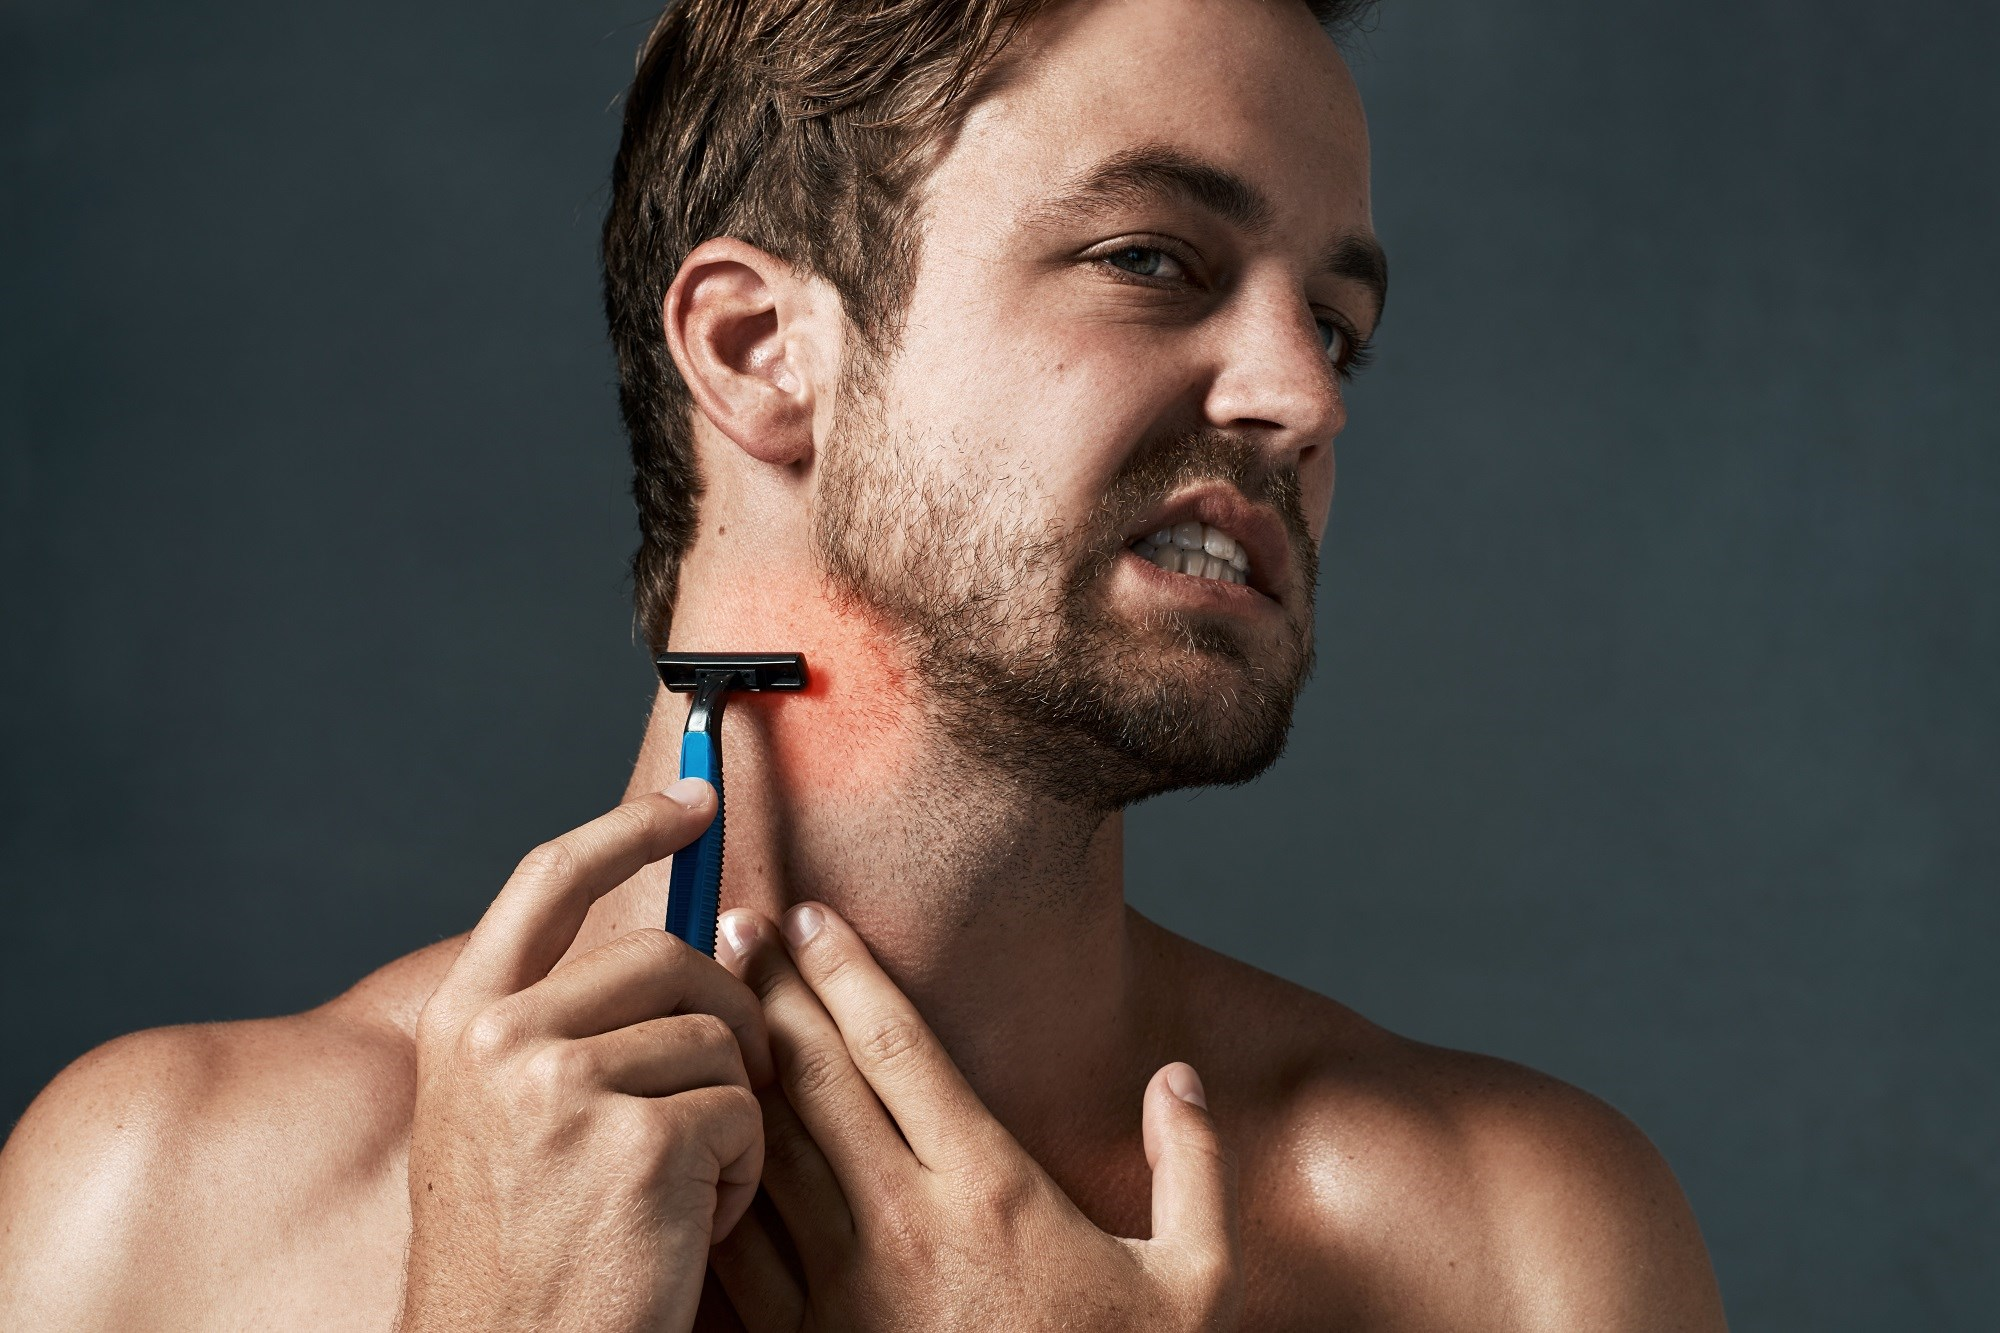 Personal Care Products: What Patients Should Know About Shaving, Detergents, and More